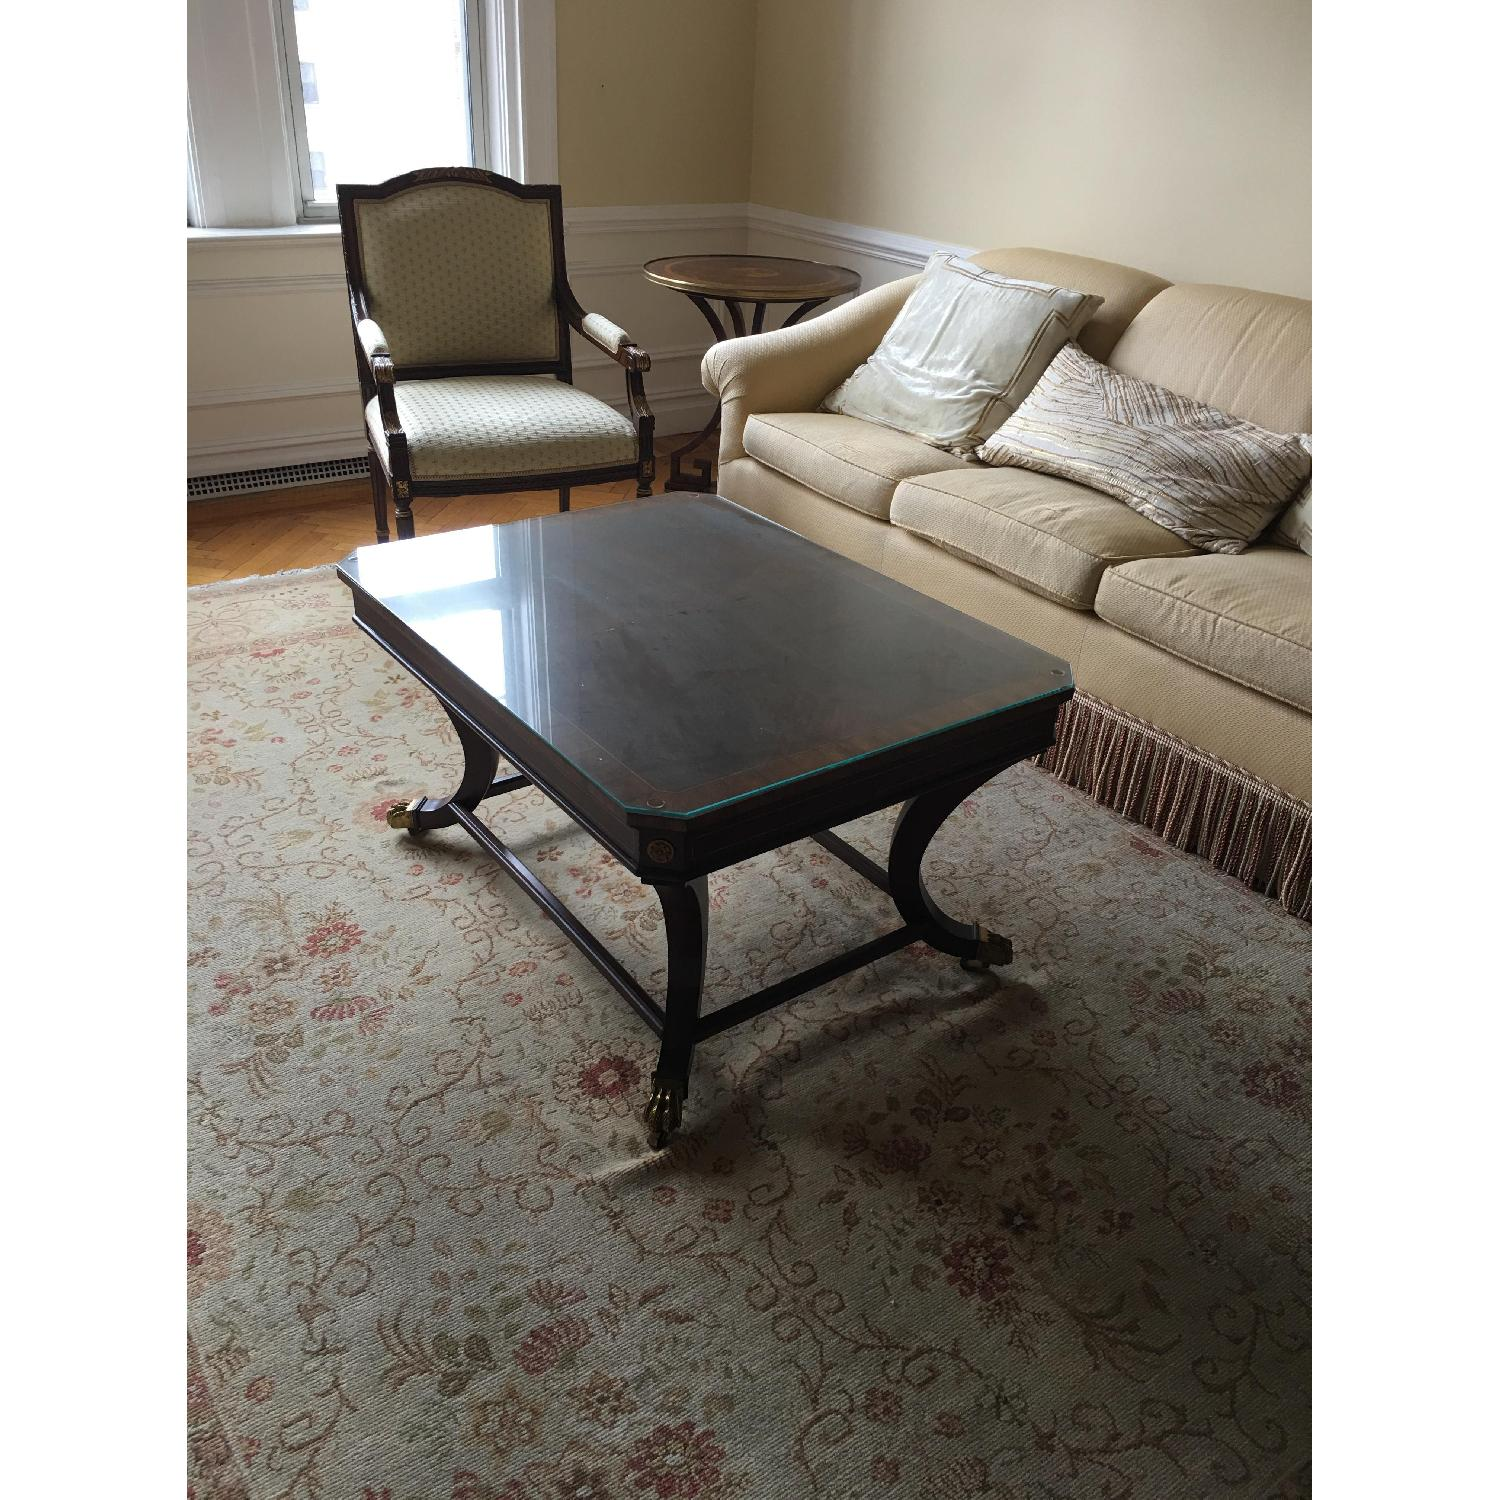 Traditional Wood Coffee Table; Traditional Wood Coffee Table 0 ...